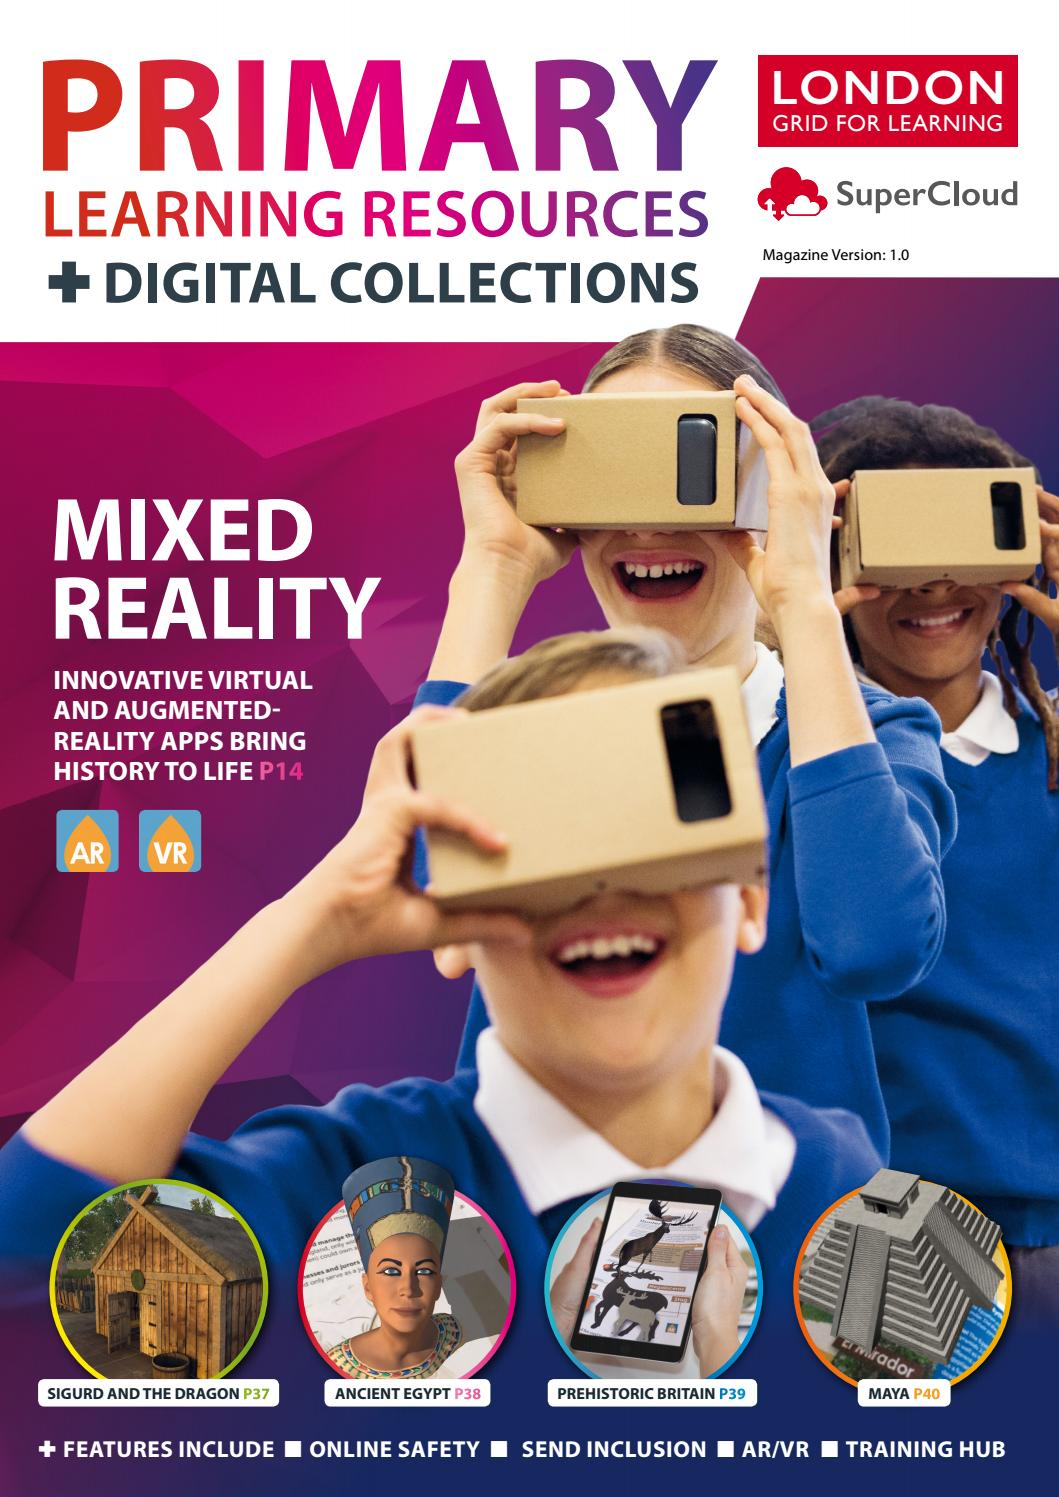 LGfL Primary Learning Resources by London Grid for Learning - issuu